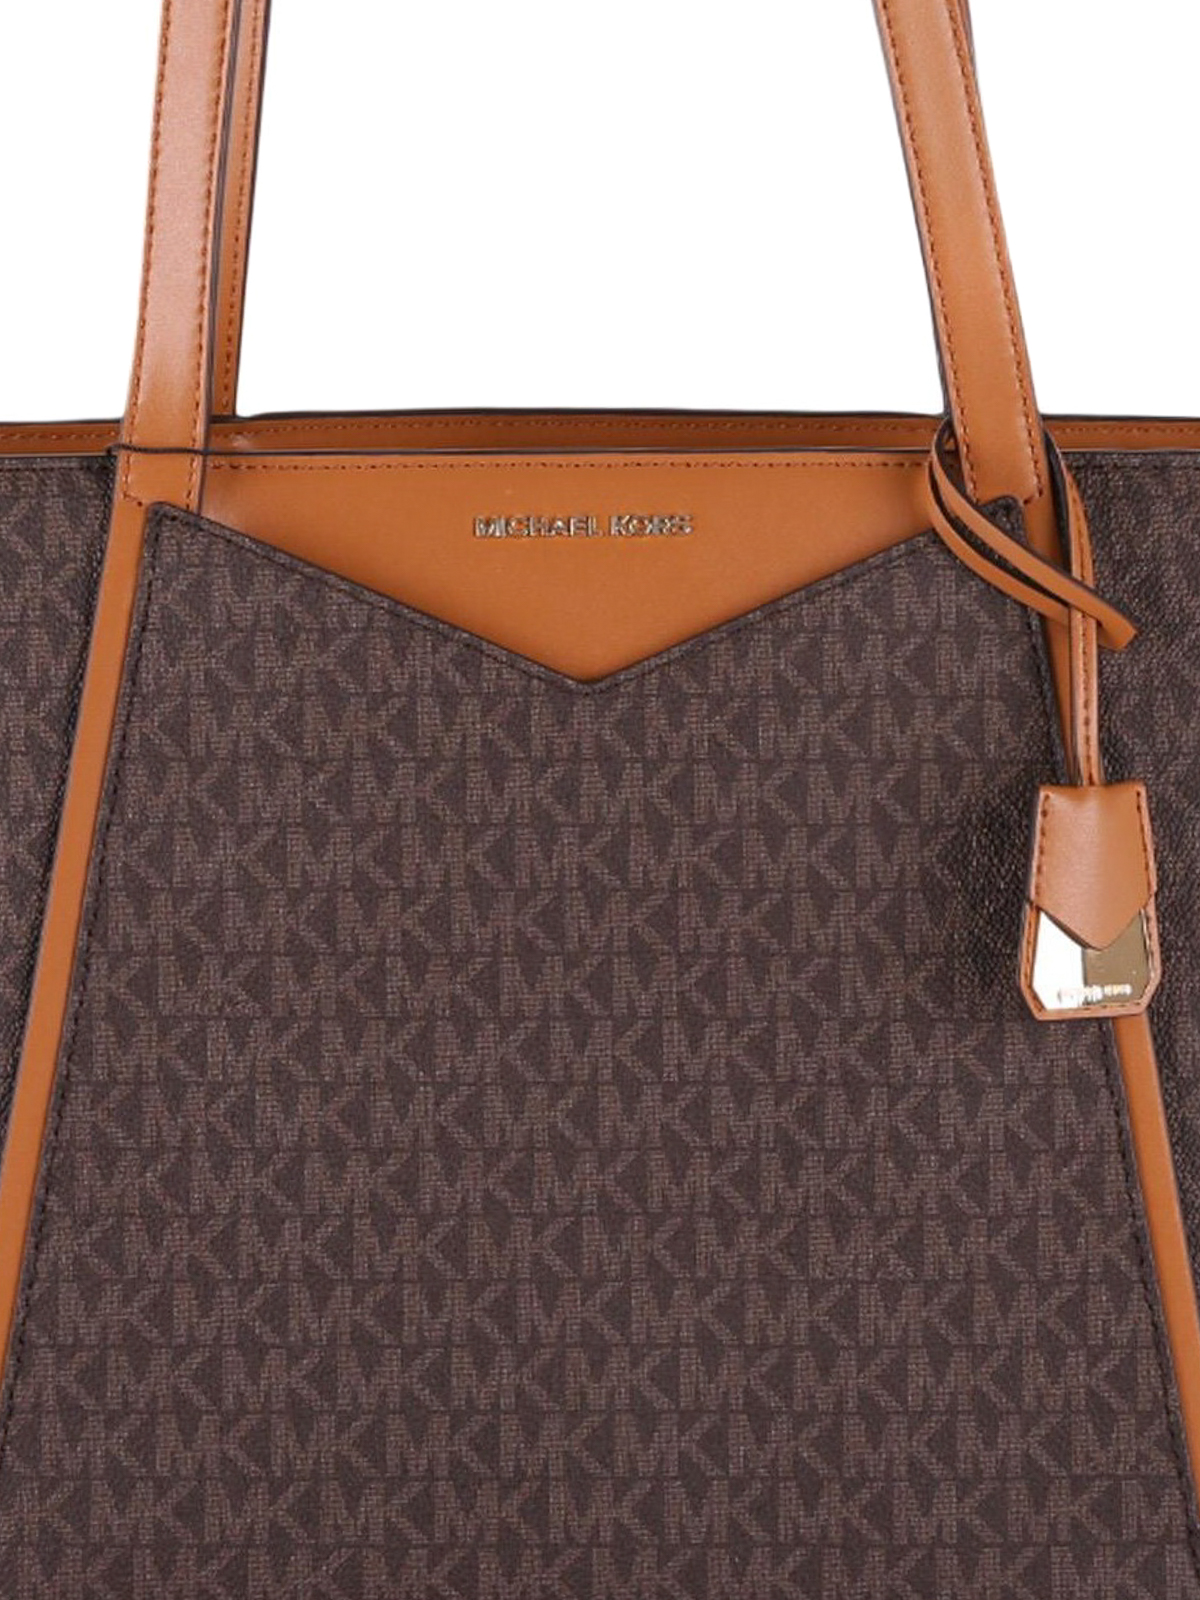 775d0ab793da7 Michael Kors - Whitney small brown tote - totes bags - 30S8GN1T1B 200